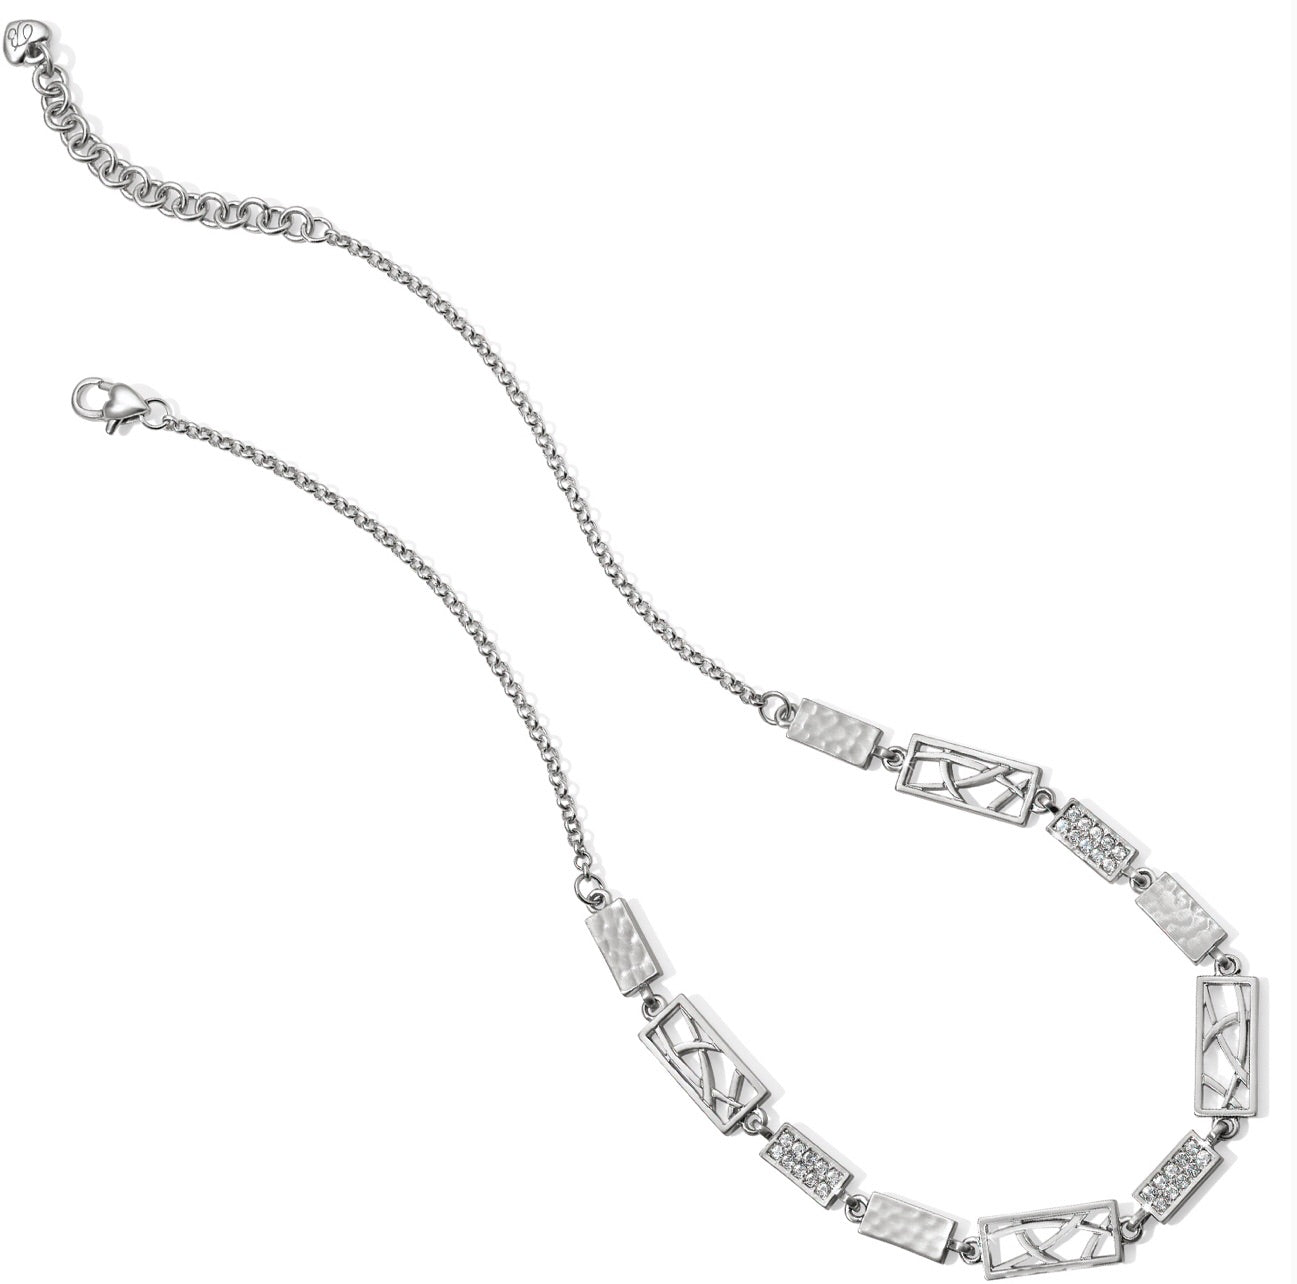 Brighton Meridian Zenith Choker Necklace